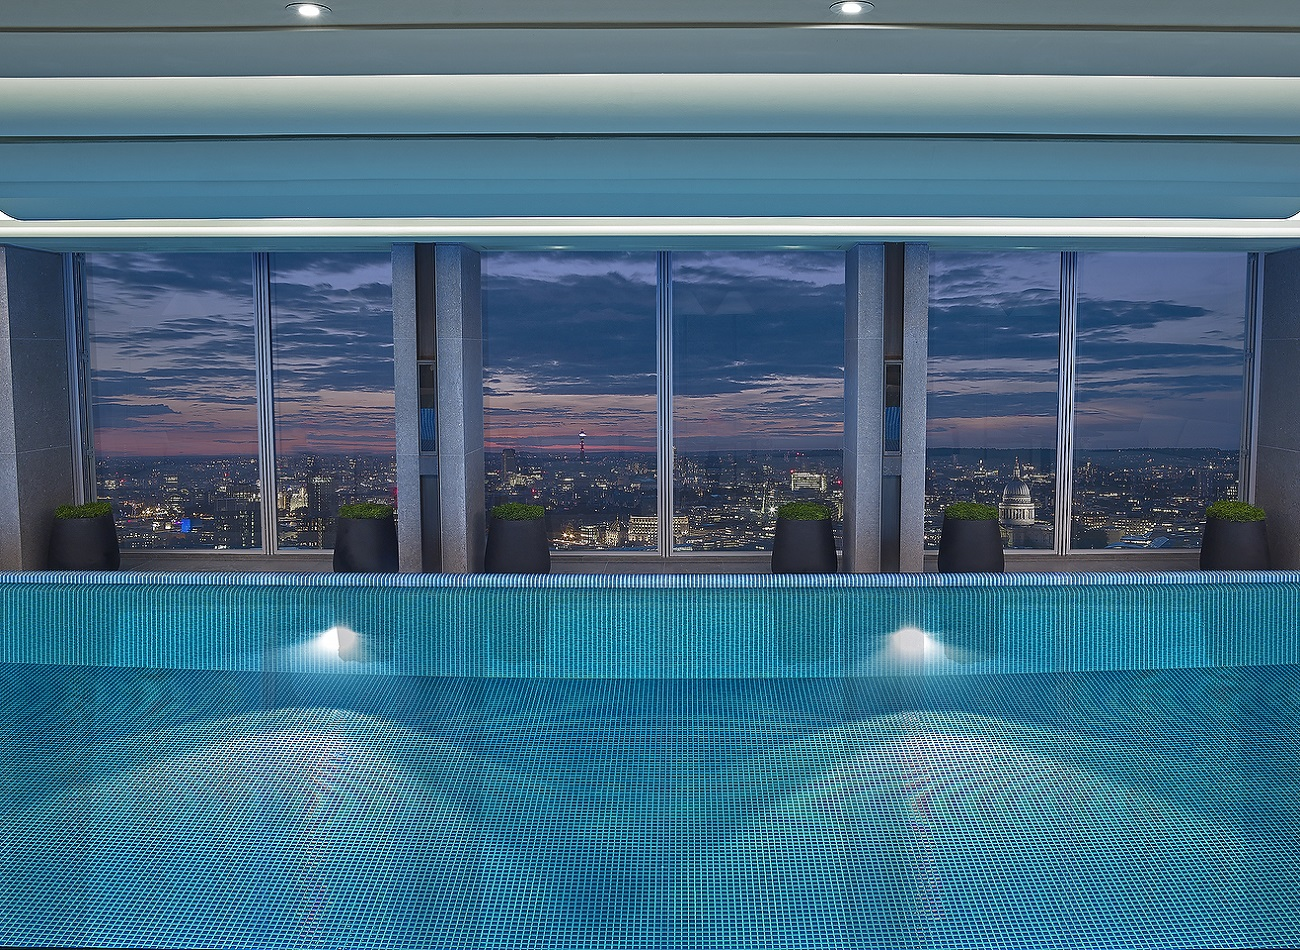 Skypool by night - Shangri-La Hotel, At The Shard, London